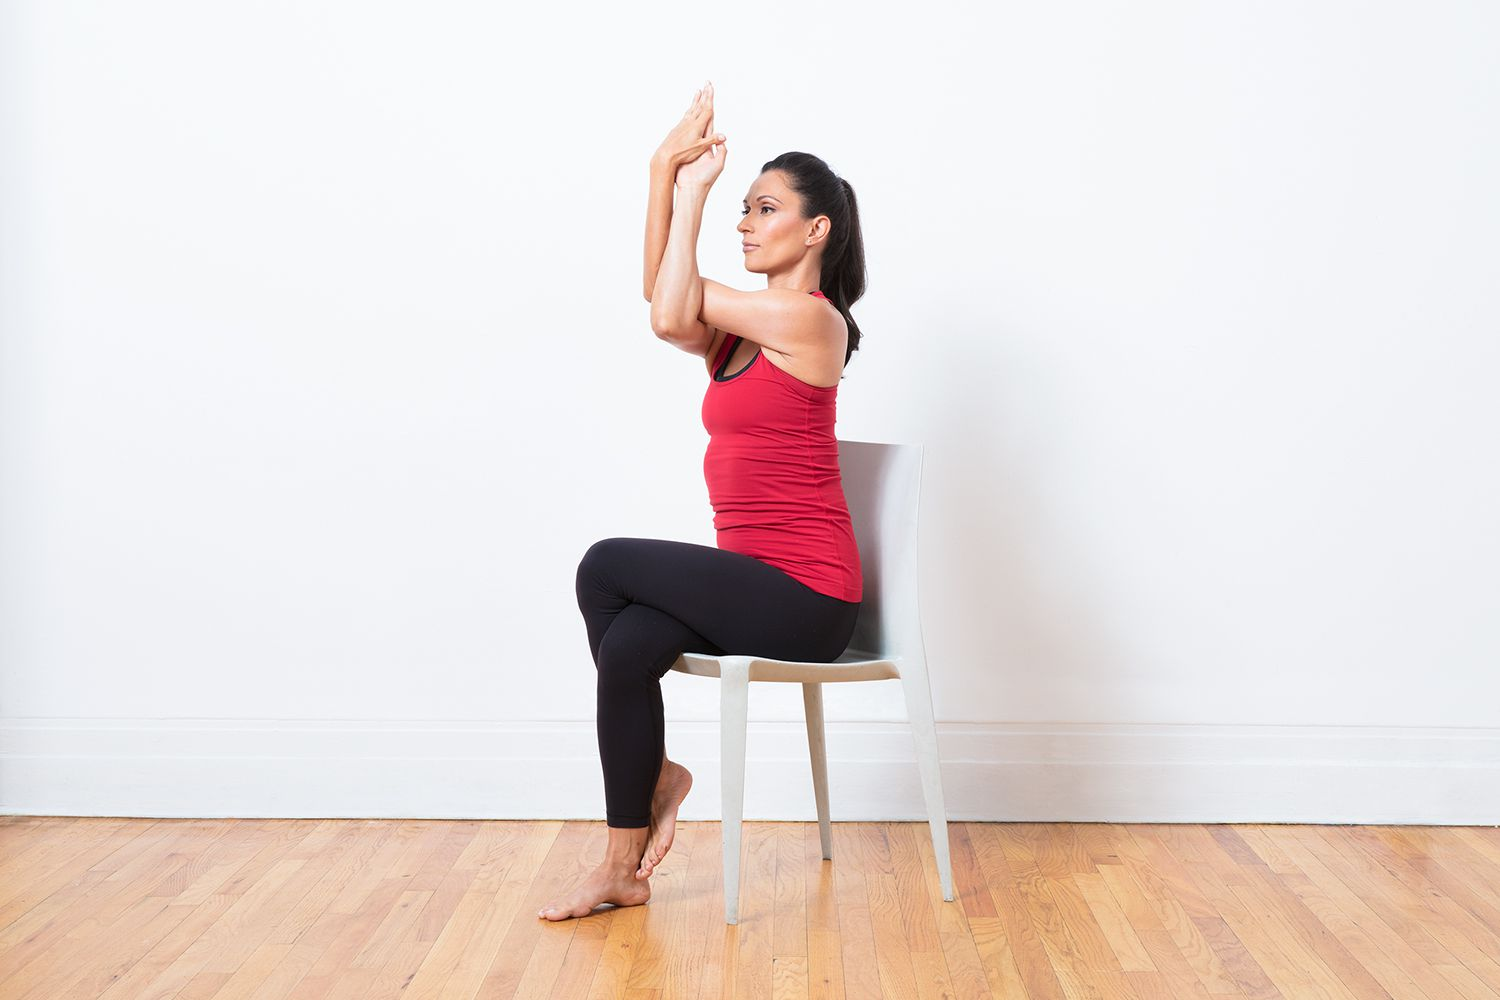 Chair Yoga Poses 10 Chair Yoga Poses For Home Practice